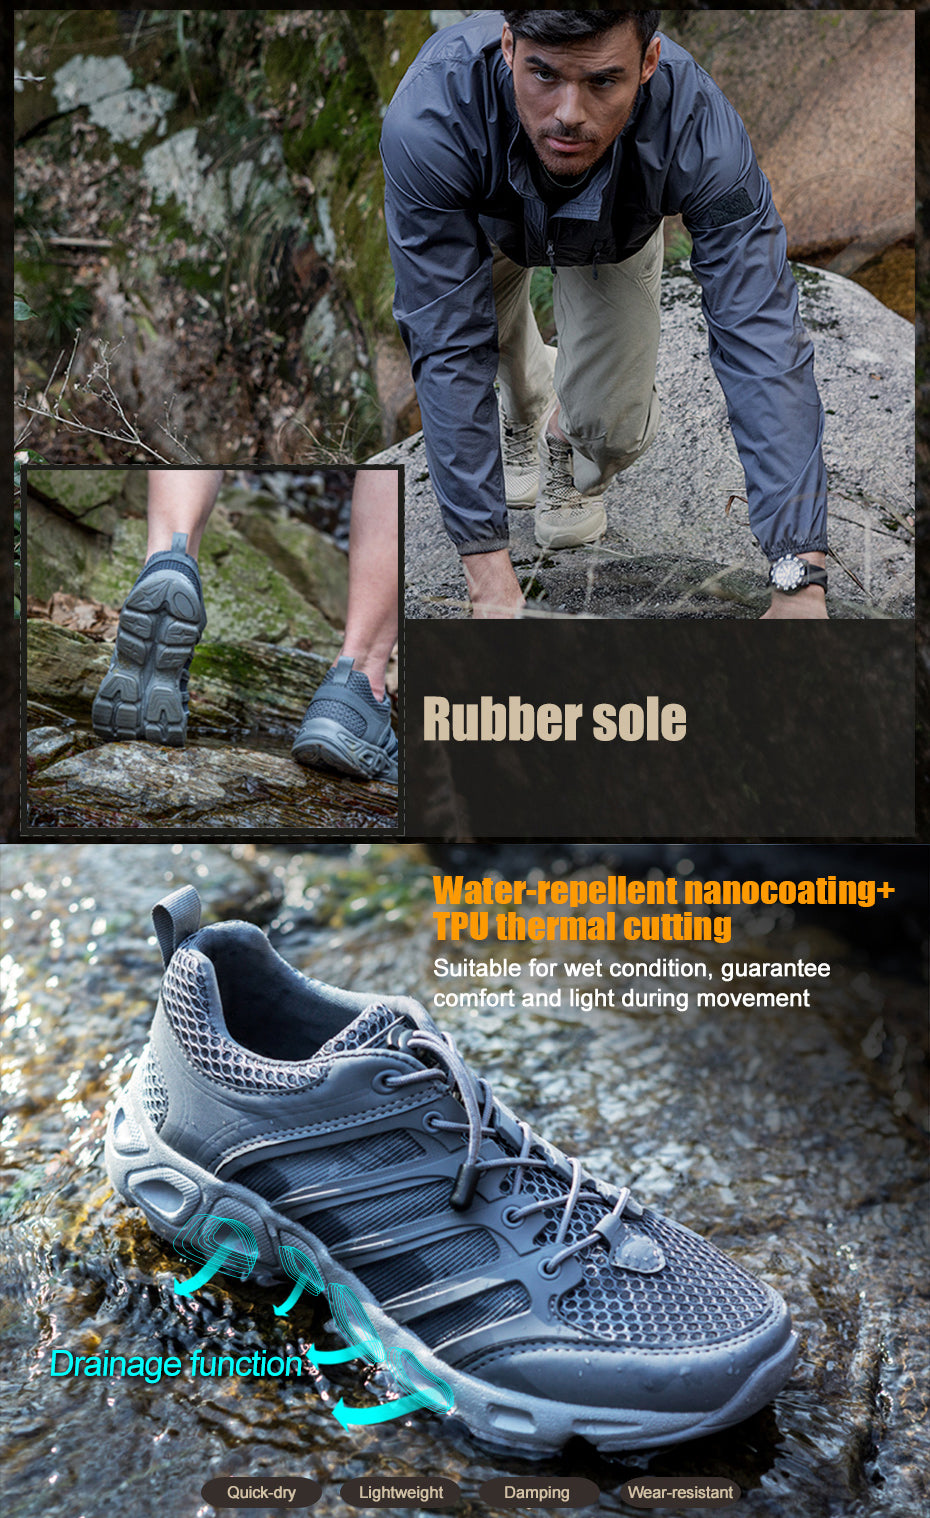 Lightweight Breathable Tactical Amphibian Shoes For Men For Warm Climate Wet Terrain